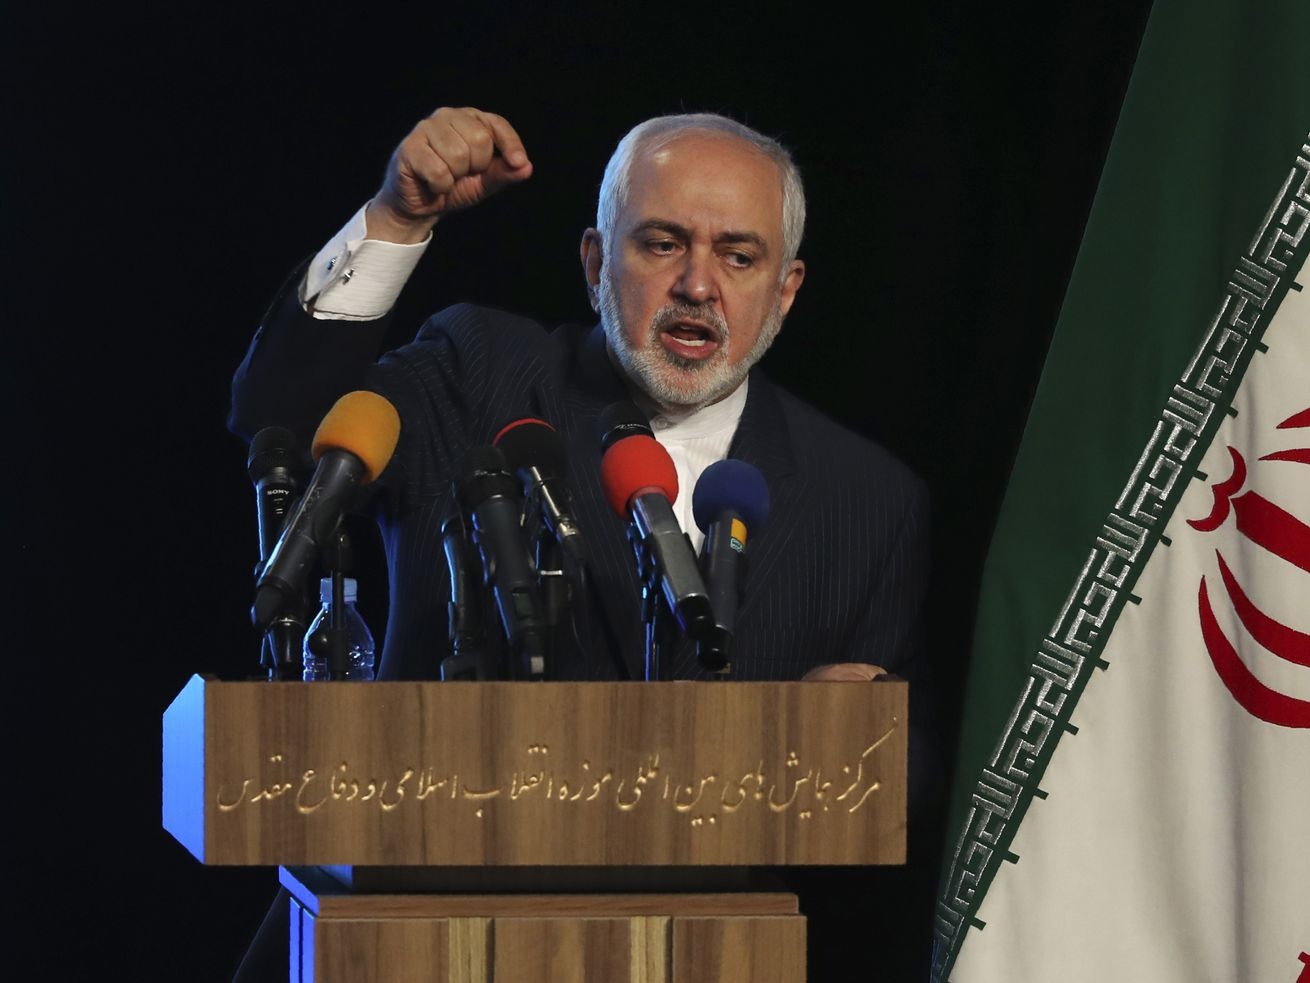 Iran's Foreign Minister Mohammad Javad Zarif addresses in a conference in Tehran, Iran, Tuesday, Feb. 23, 2021.